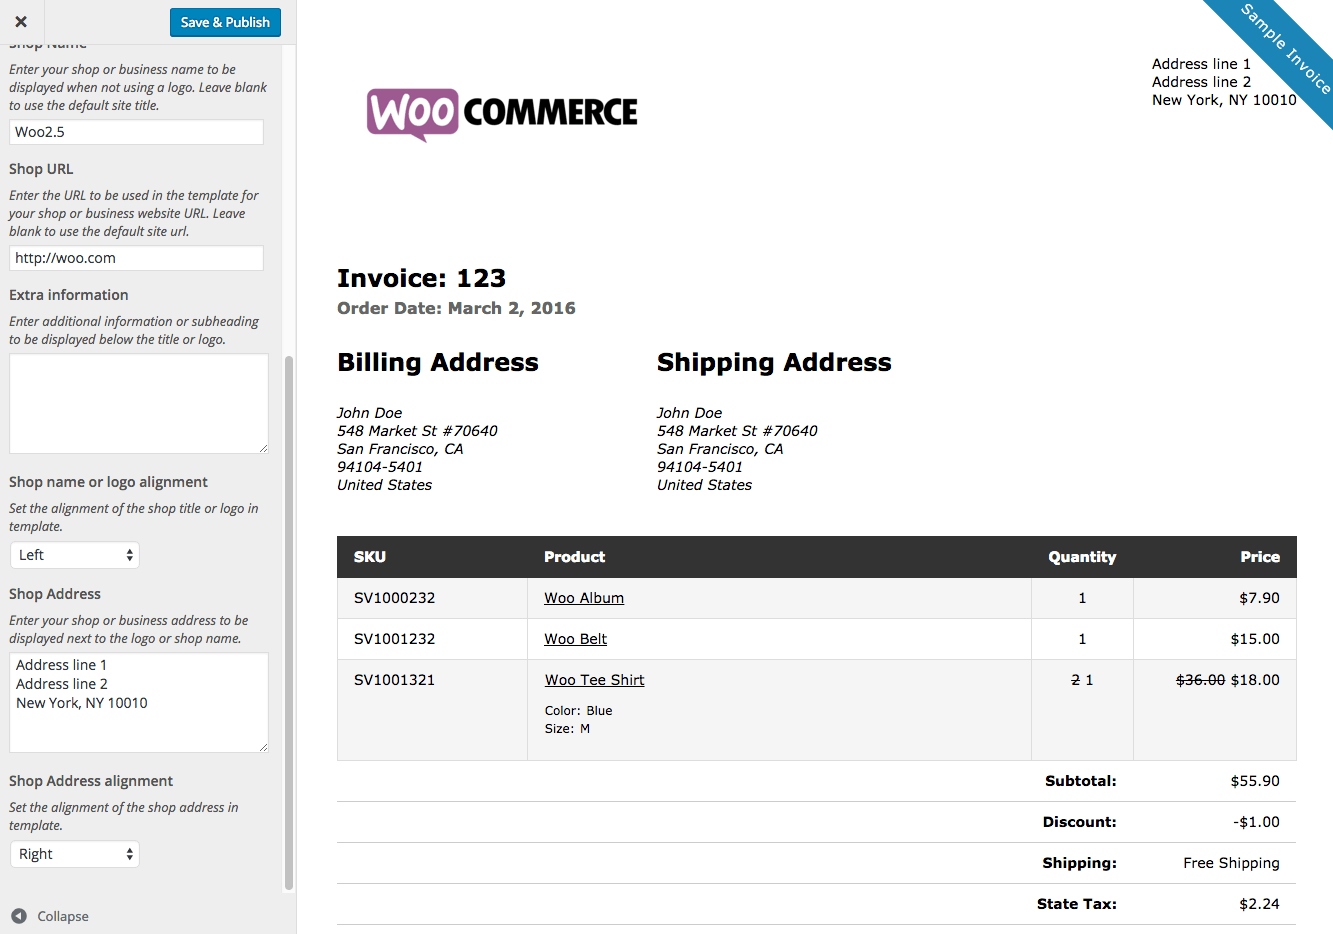 Modaoxus  Remarkable Woocommerce Print Invoices Amp Packing Lists  Woocommerce Docs With Handsome Woocommerce Print Invoices  Packing Lists Customizer With Delightful Mazda Invoice Also Template For Proforma Invoice In Addition Free Blank Invoice Template Word And Generate Invoices As Well As Express Invoice Software Additionally Invoice Price For Mazda Cx From Docswoocommercecom With Modaoxus  Handsome Woocommerce Print Invoices Amp Packing Lists  Woocommerce Docs With Delightful Woocommerce Print Invoices  Packing Lists Customizer And Remarkable Mazda Invoice Also Template For Proforma Invoice In Addition Free Blank Invoice Template Word From Docswoocommercecom